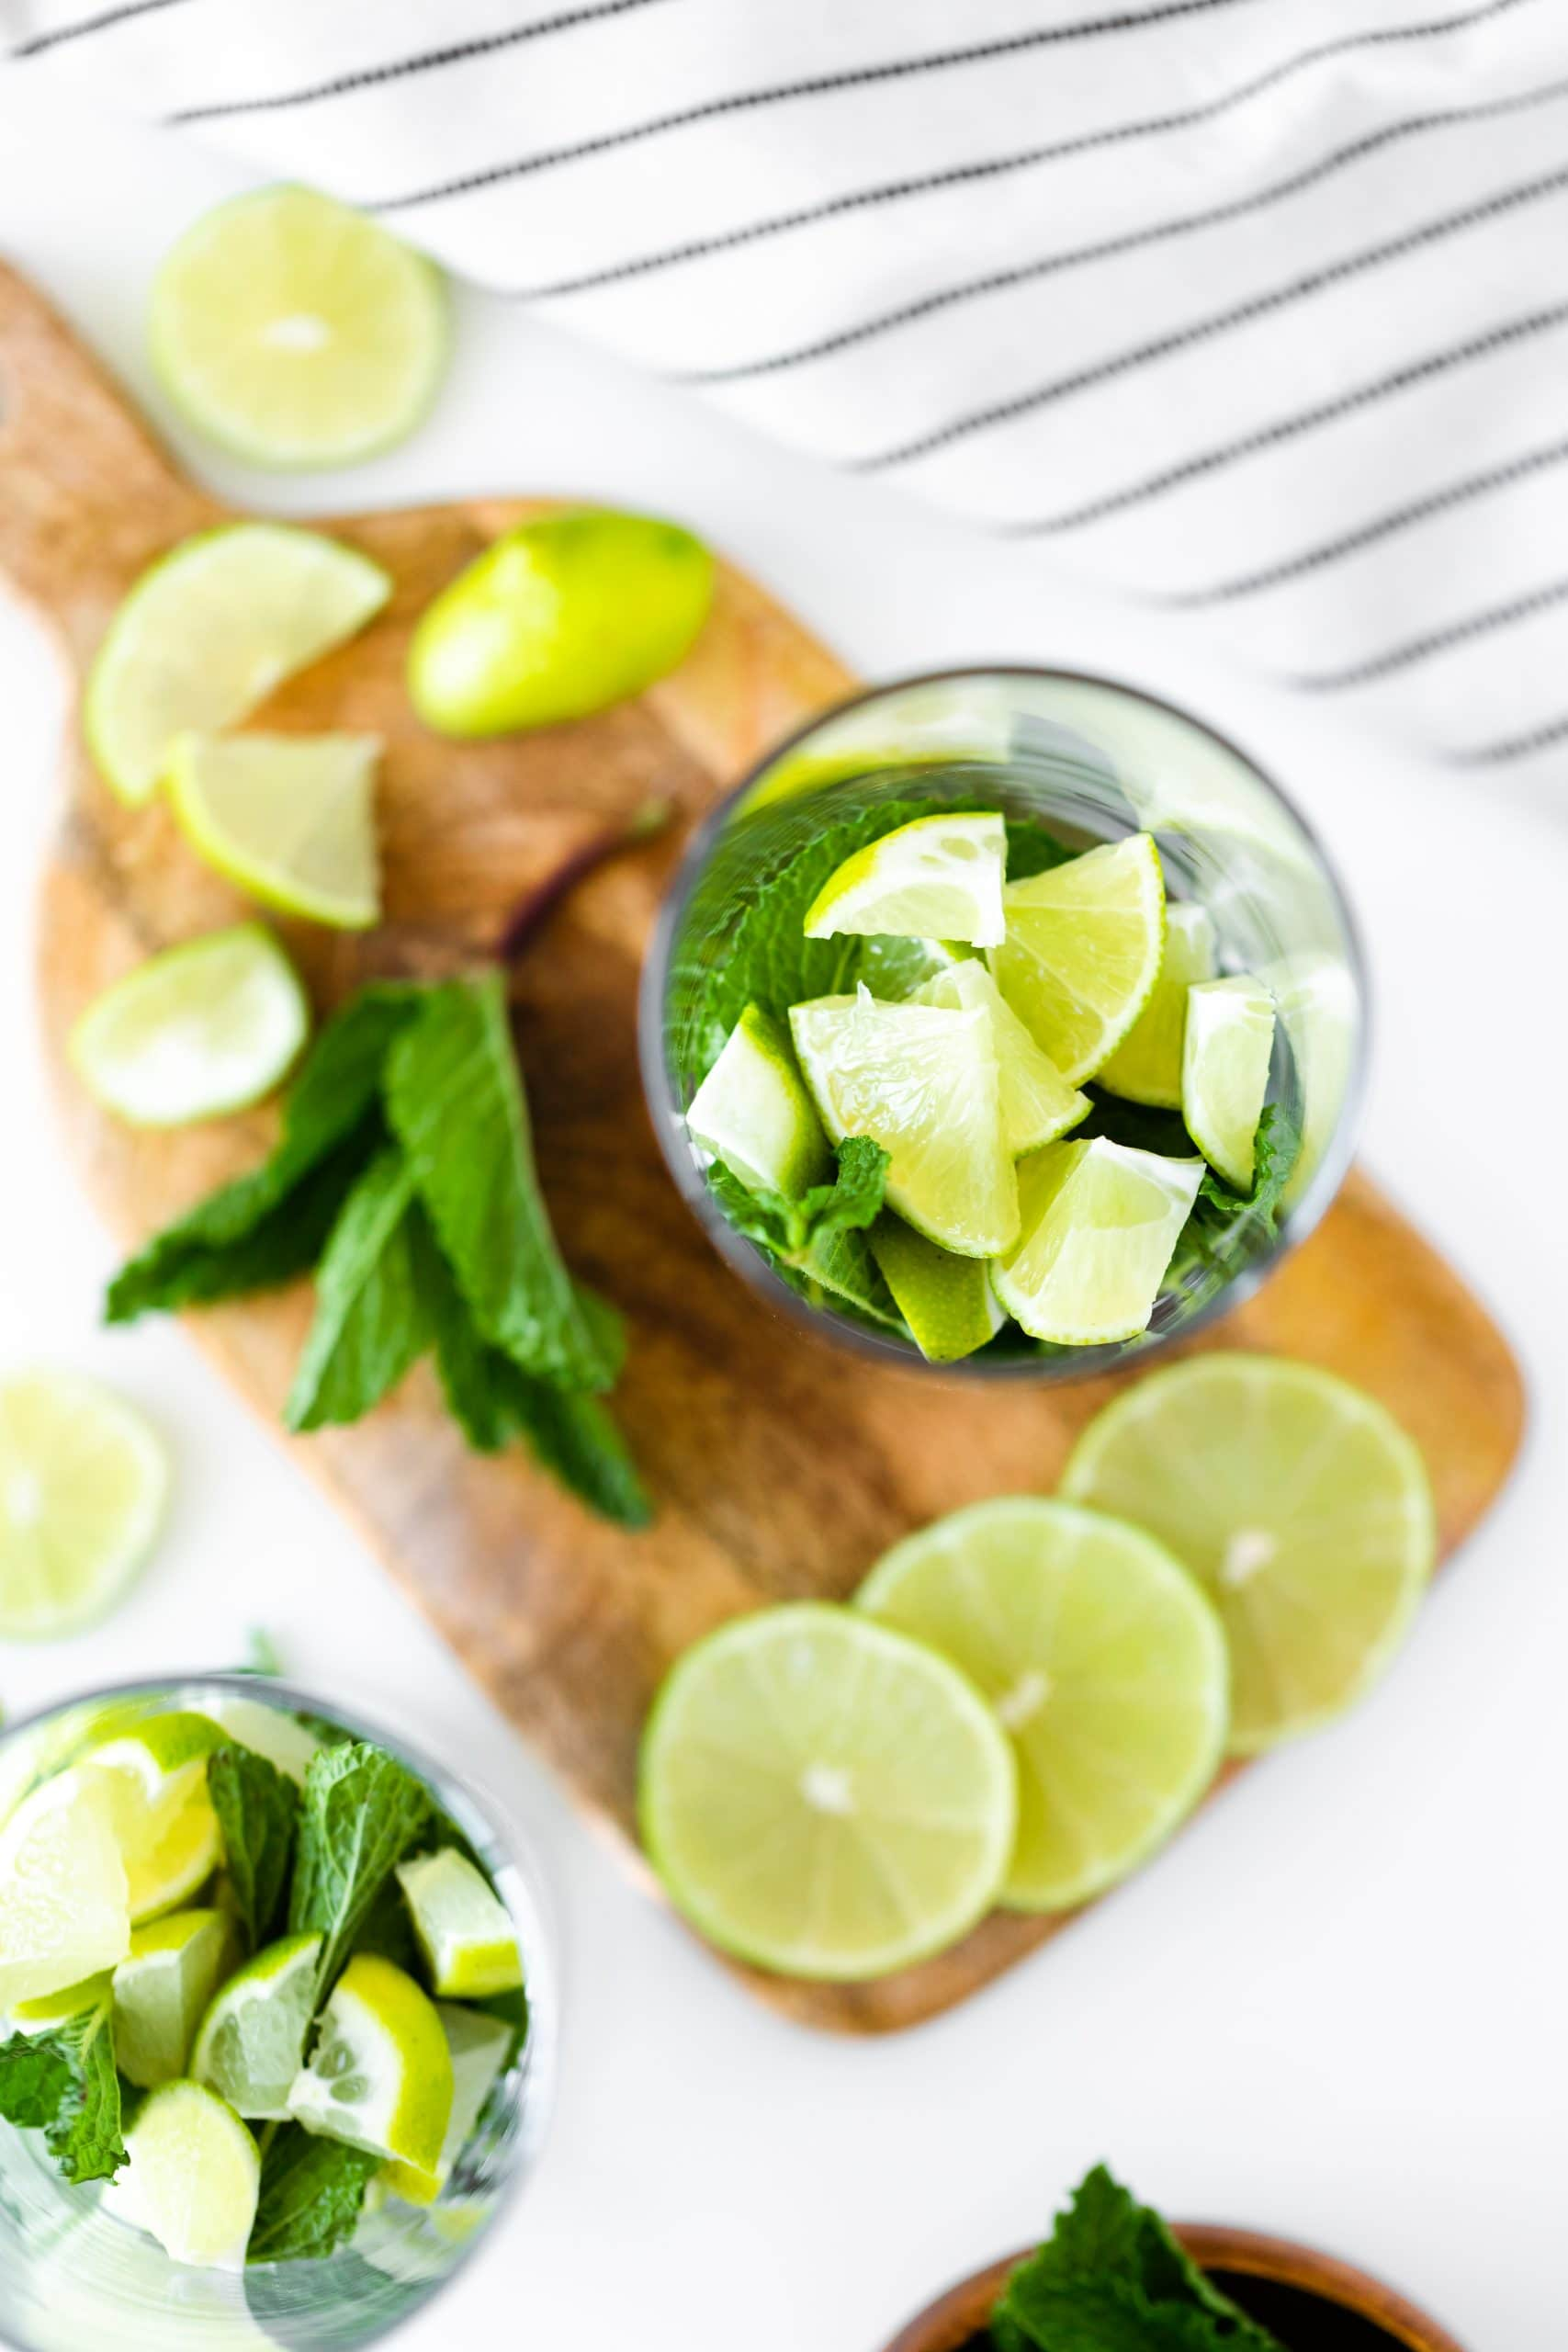 Ingredients for a mojito in a tall glass. Overhead photo